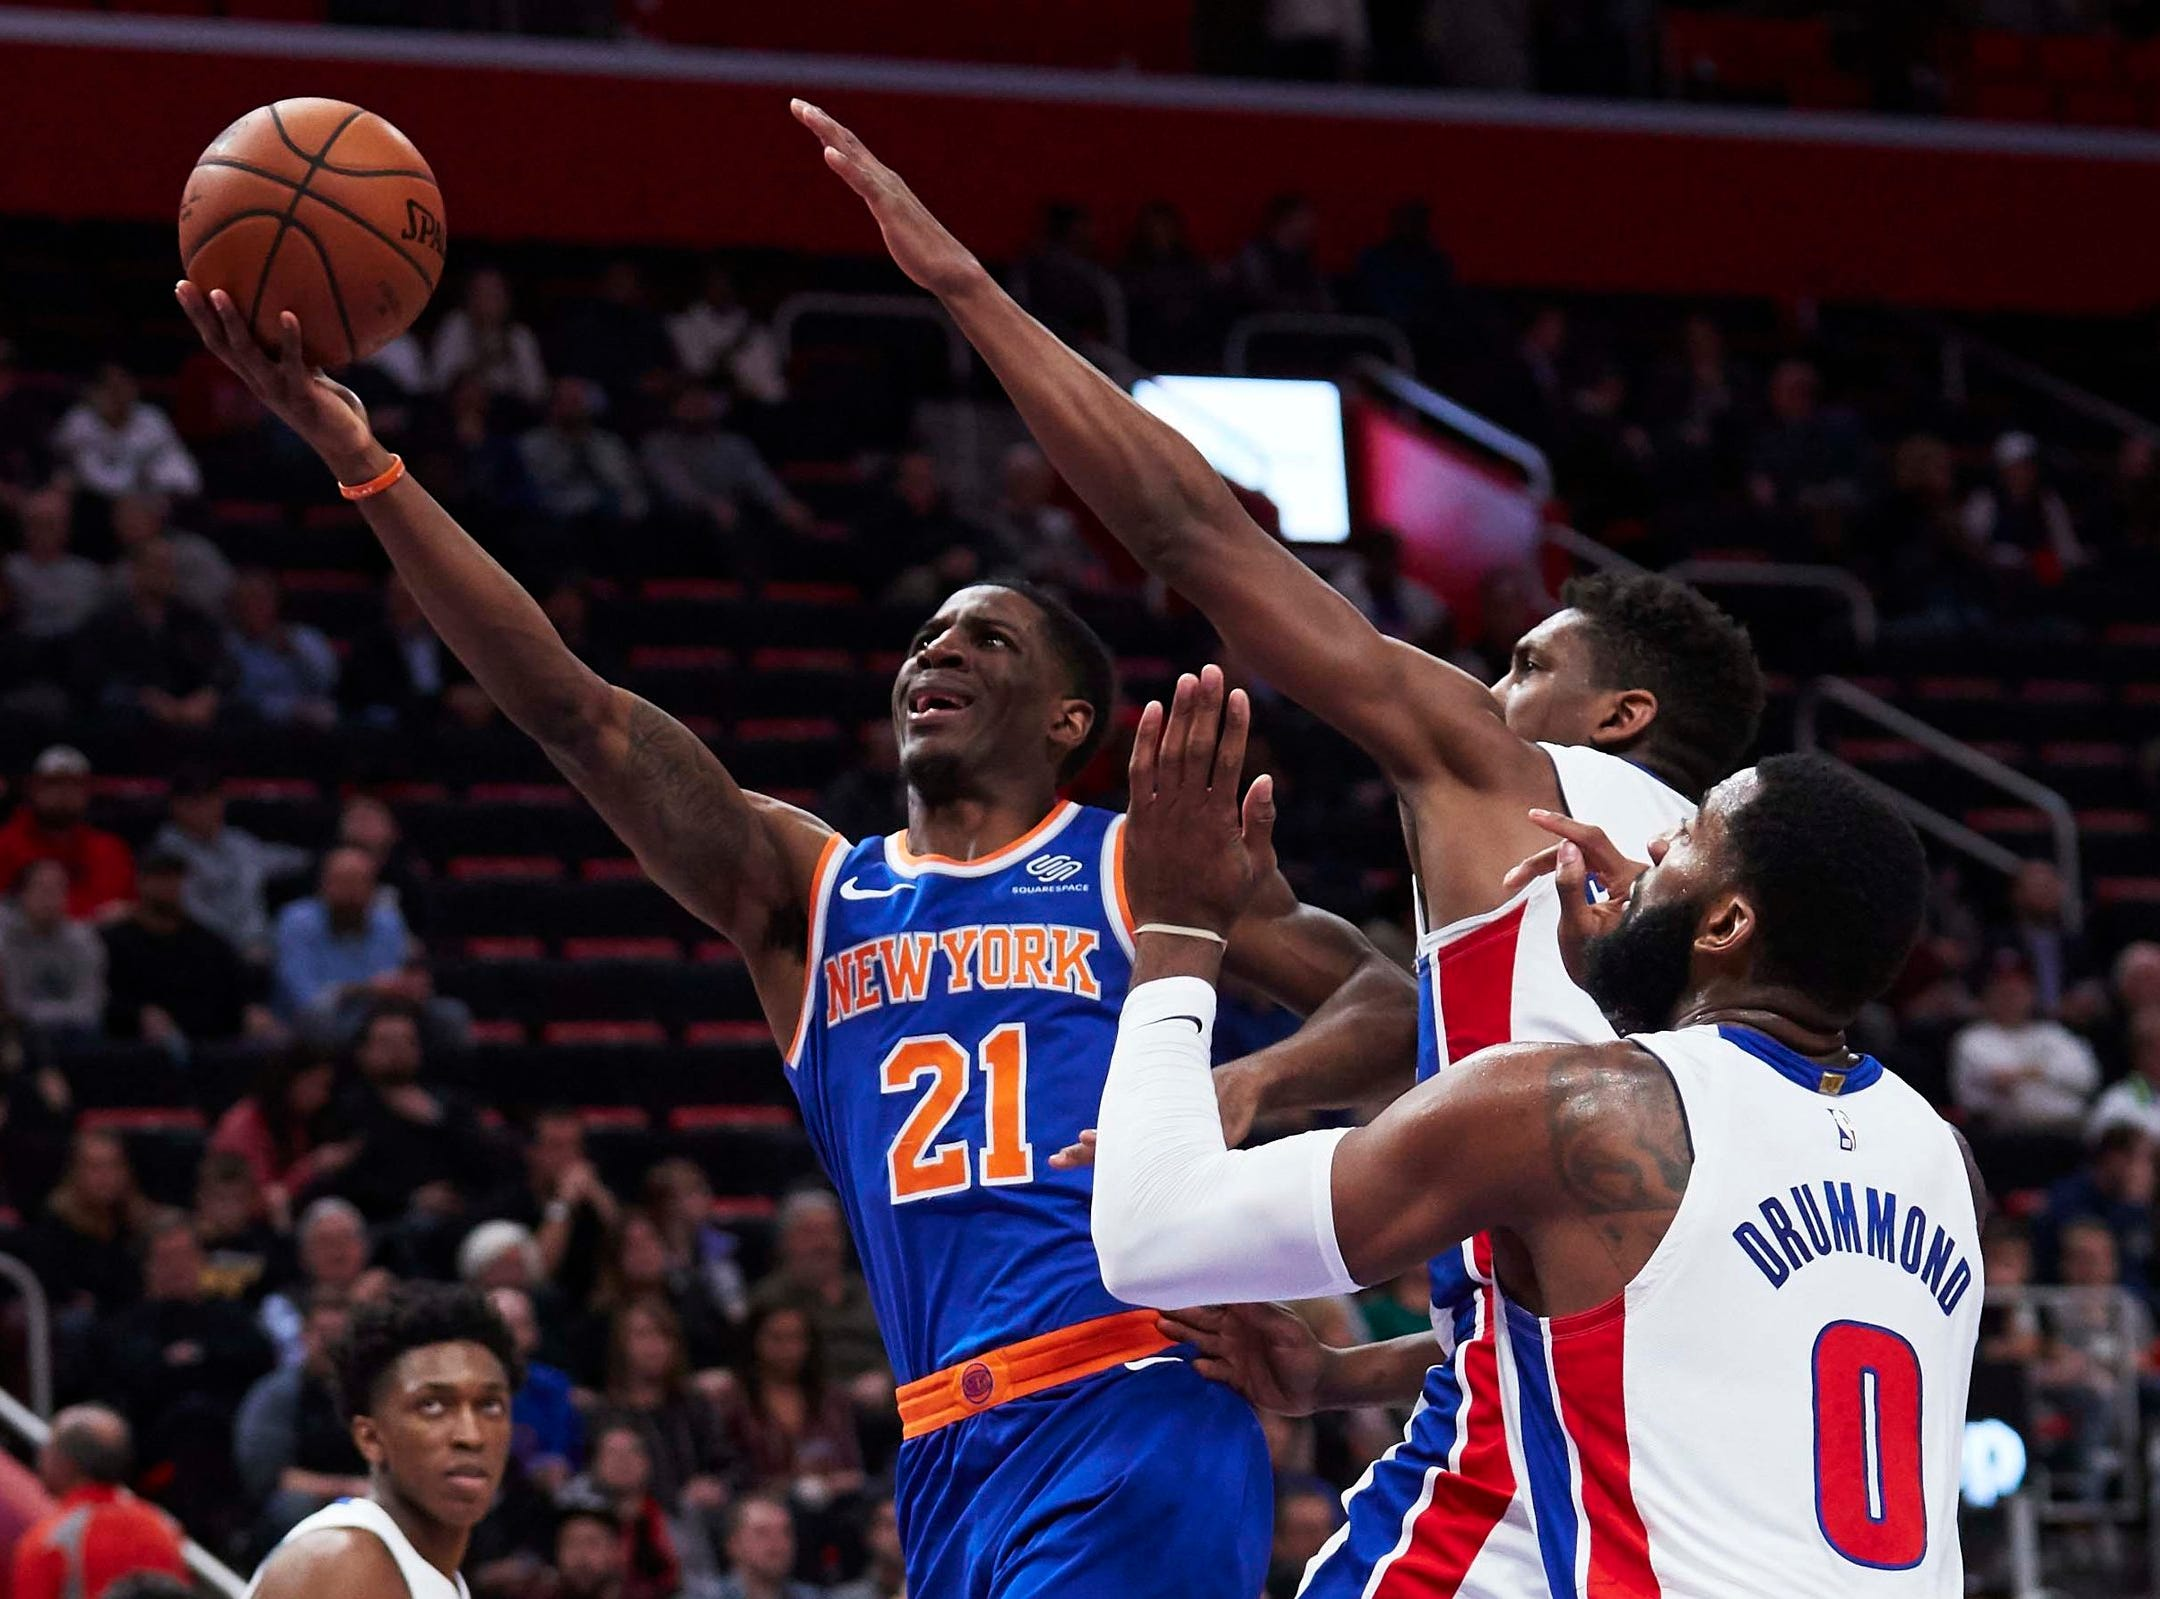 New York Knicks guard Damyean Dotson (21) goes to the basket on Detroit Pistons guard Langston Galloway (9) and center Andre Drummond (0) in the second half at Little Caesars Arena.